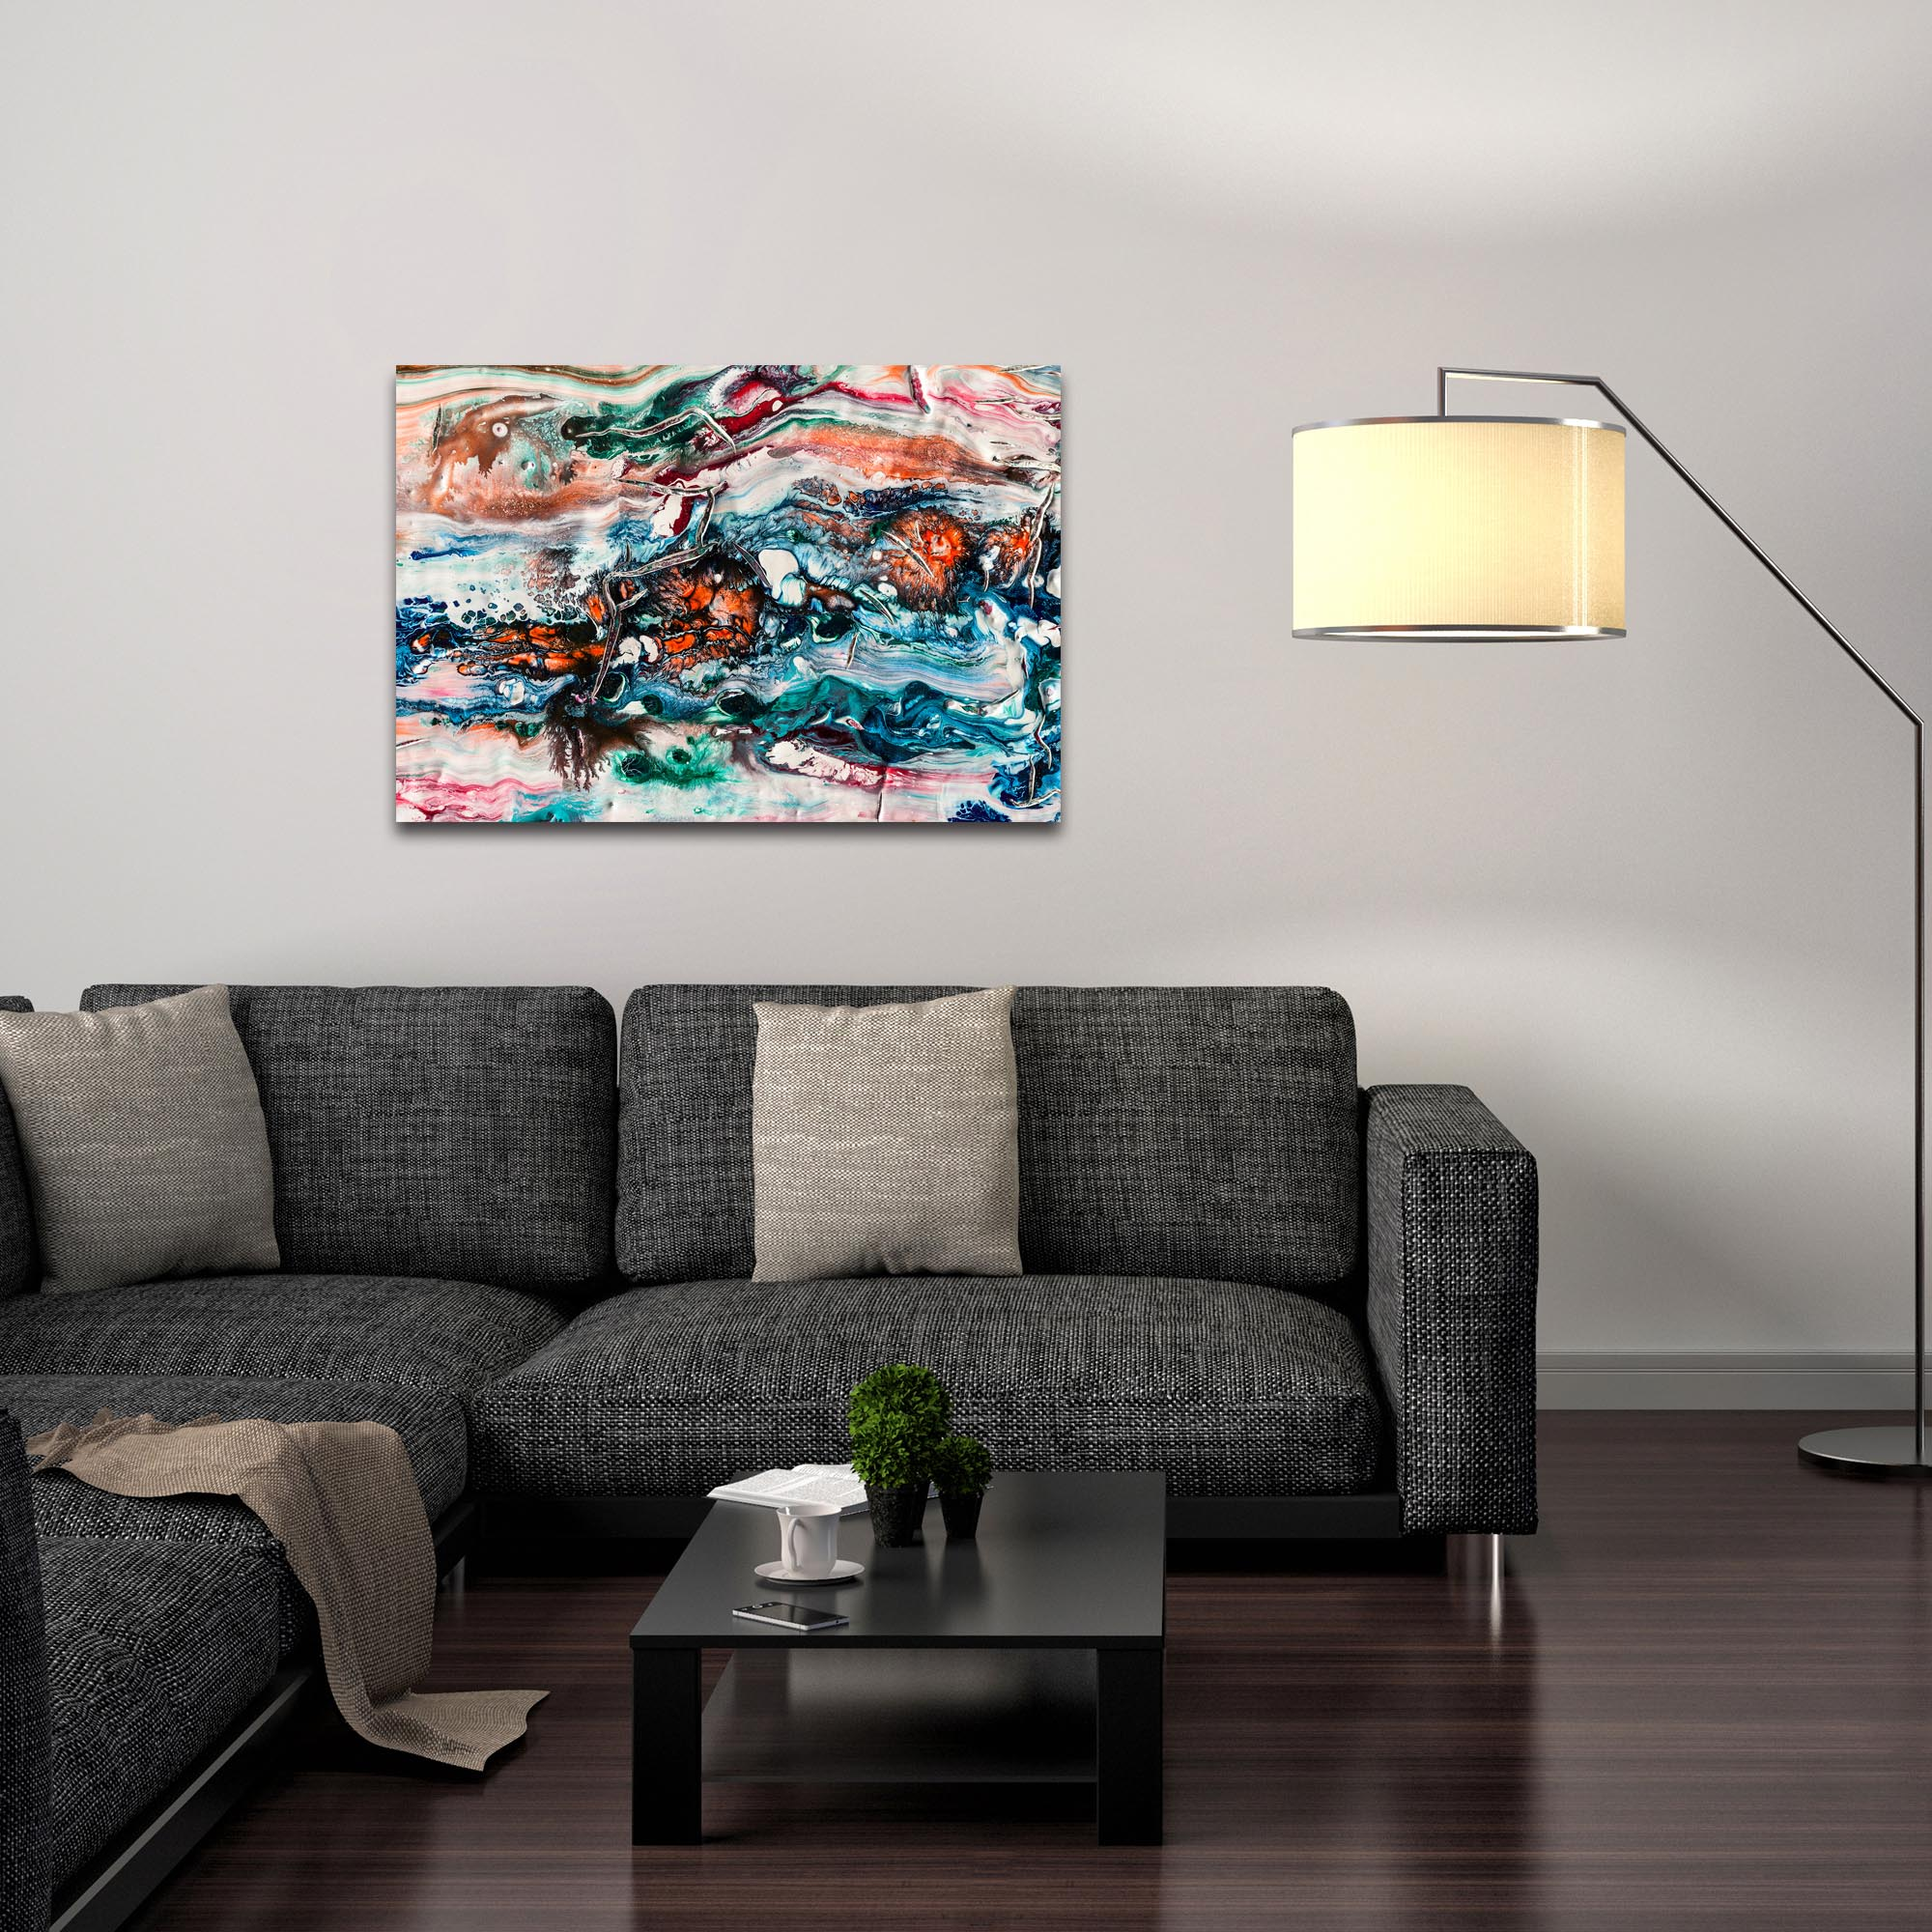 Abstract Wall Art 'Sunset On Her Breath 2' - Colorful Urban Decor on Metal or Plexiglass - Lifestyle View